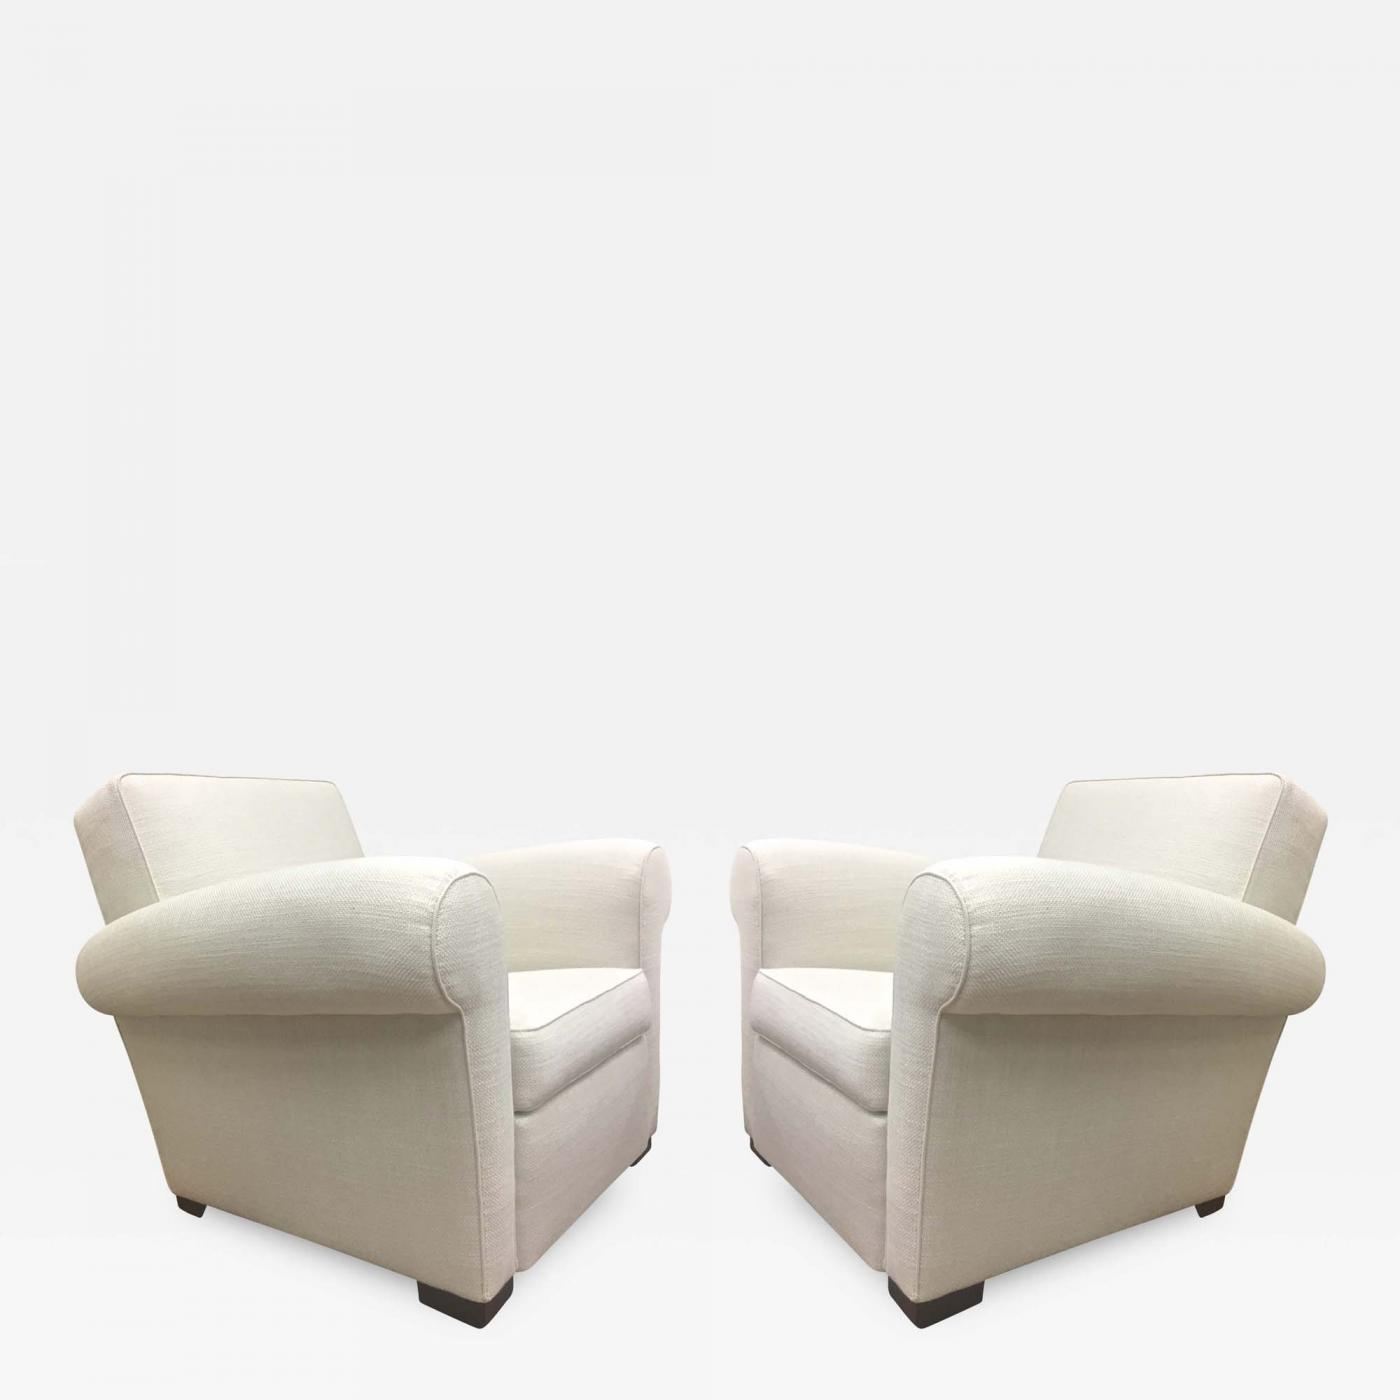 Listings / Furniture / Seating / Club Chairs & Pair of Comfortable Club Chairs in the style of Jacques Adnet